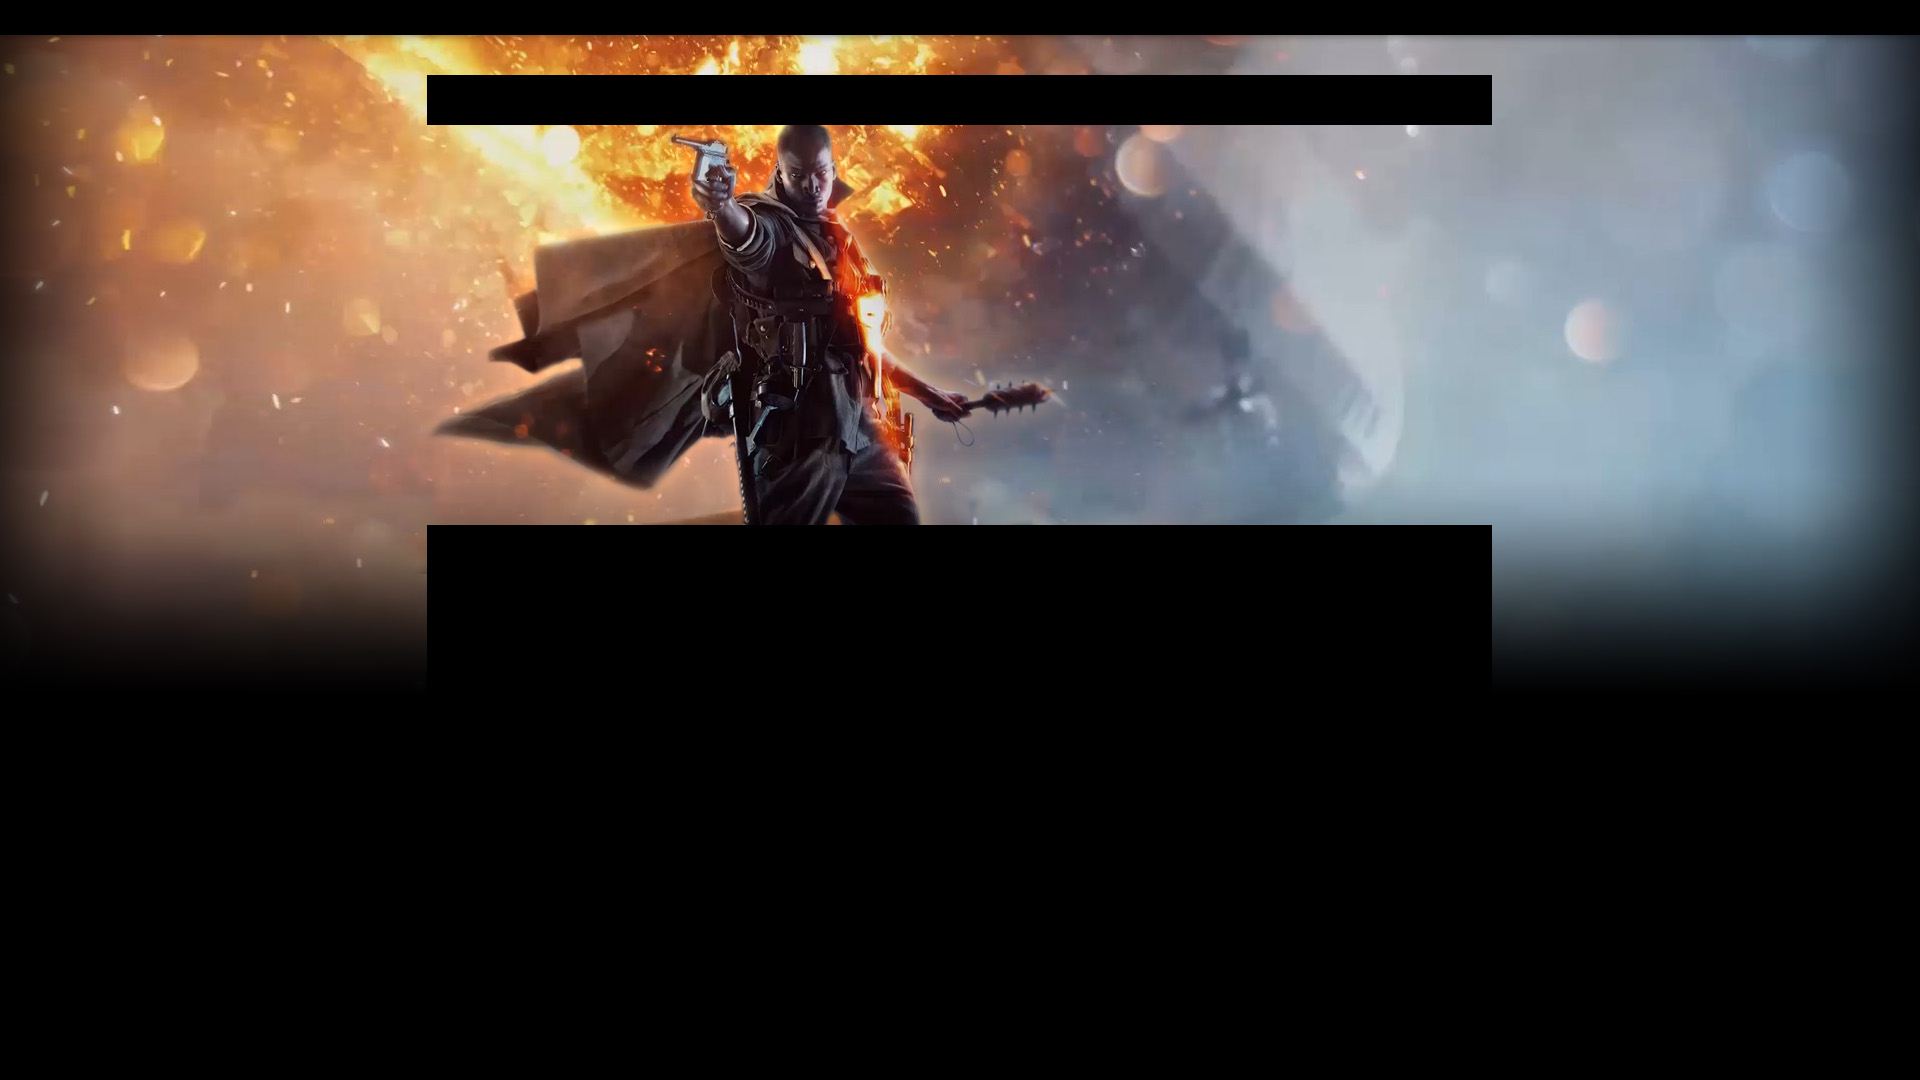 BATTLEFIELD 1 [PC/XBOX ONE/PS4] video game